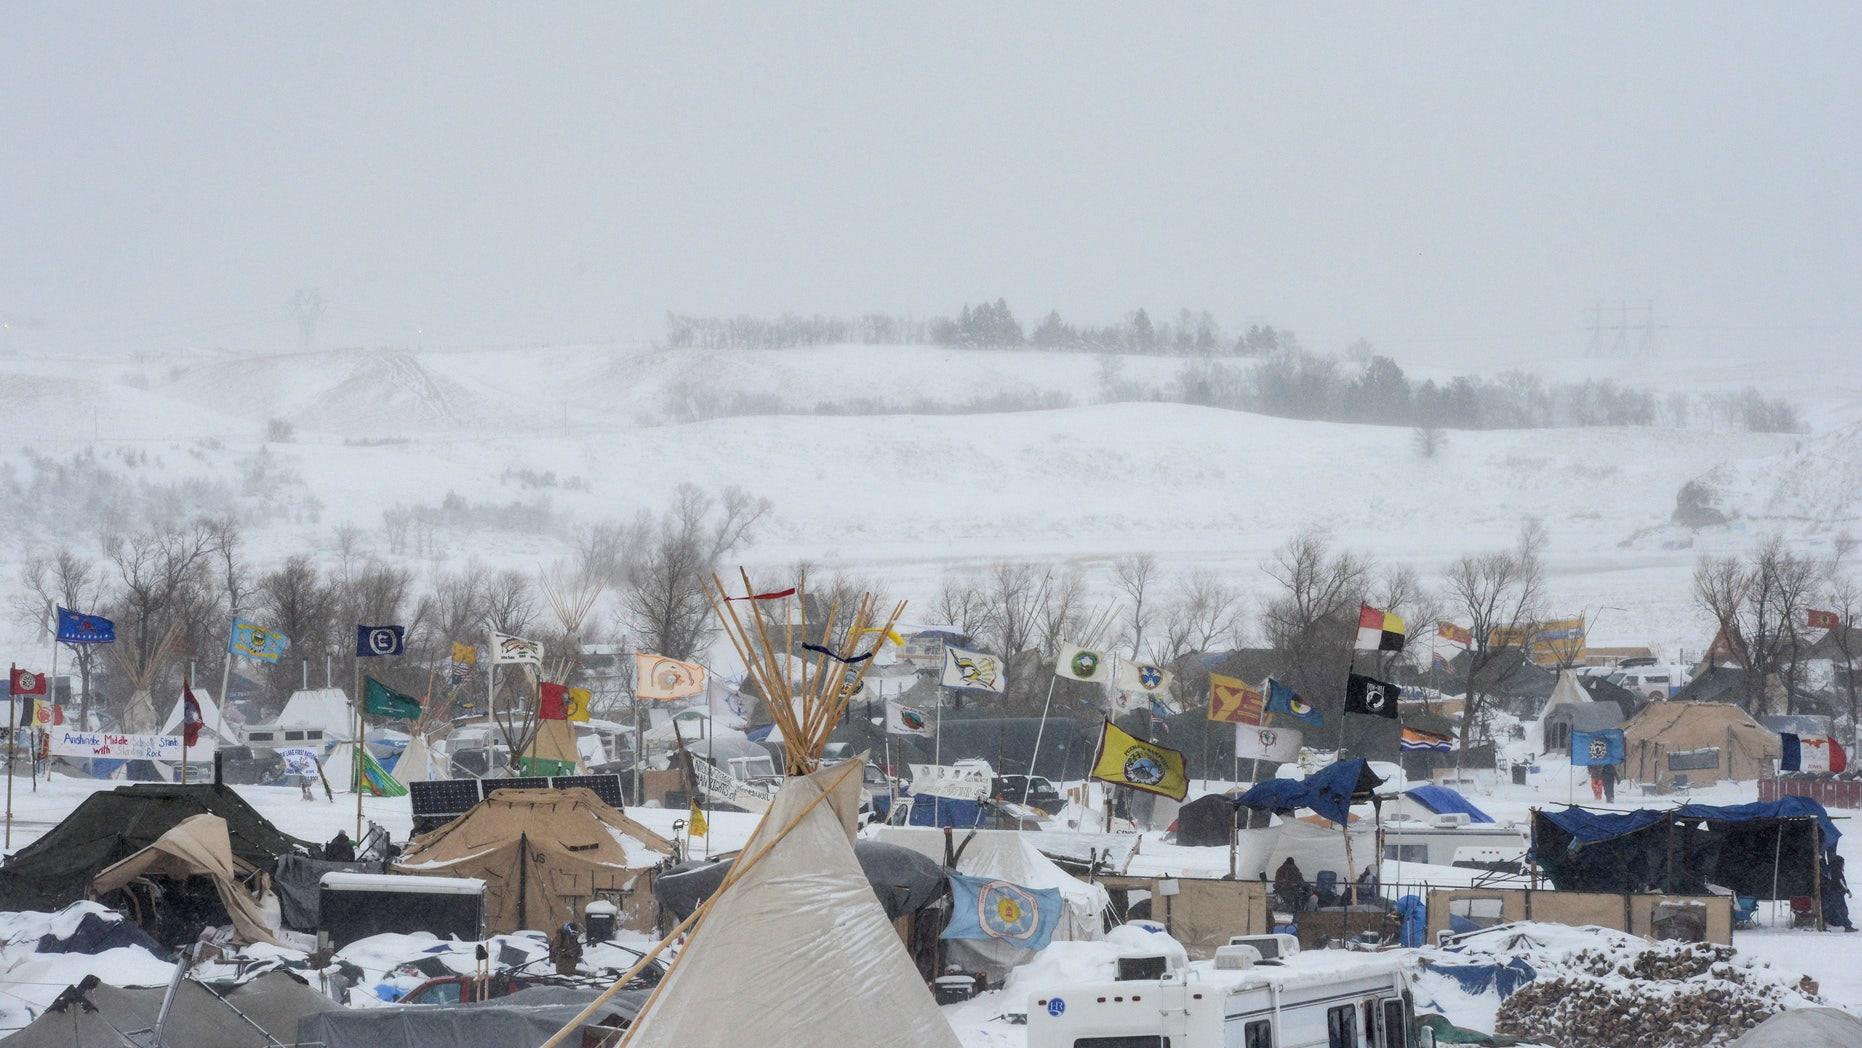 The Oceti Sakowin camp is seen in a snow storm during a protest against plans to pass the Dakota Access pipeline near the Standing Rock Indian Reservation, near Cannon Ball, North Dakota, U.S. November 29, 2016.